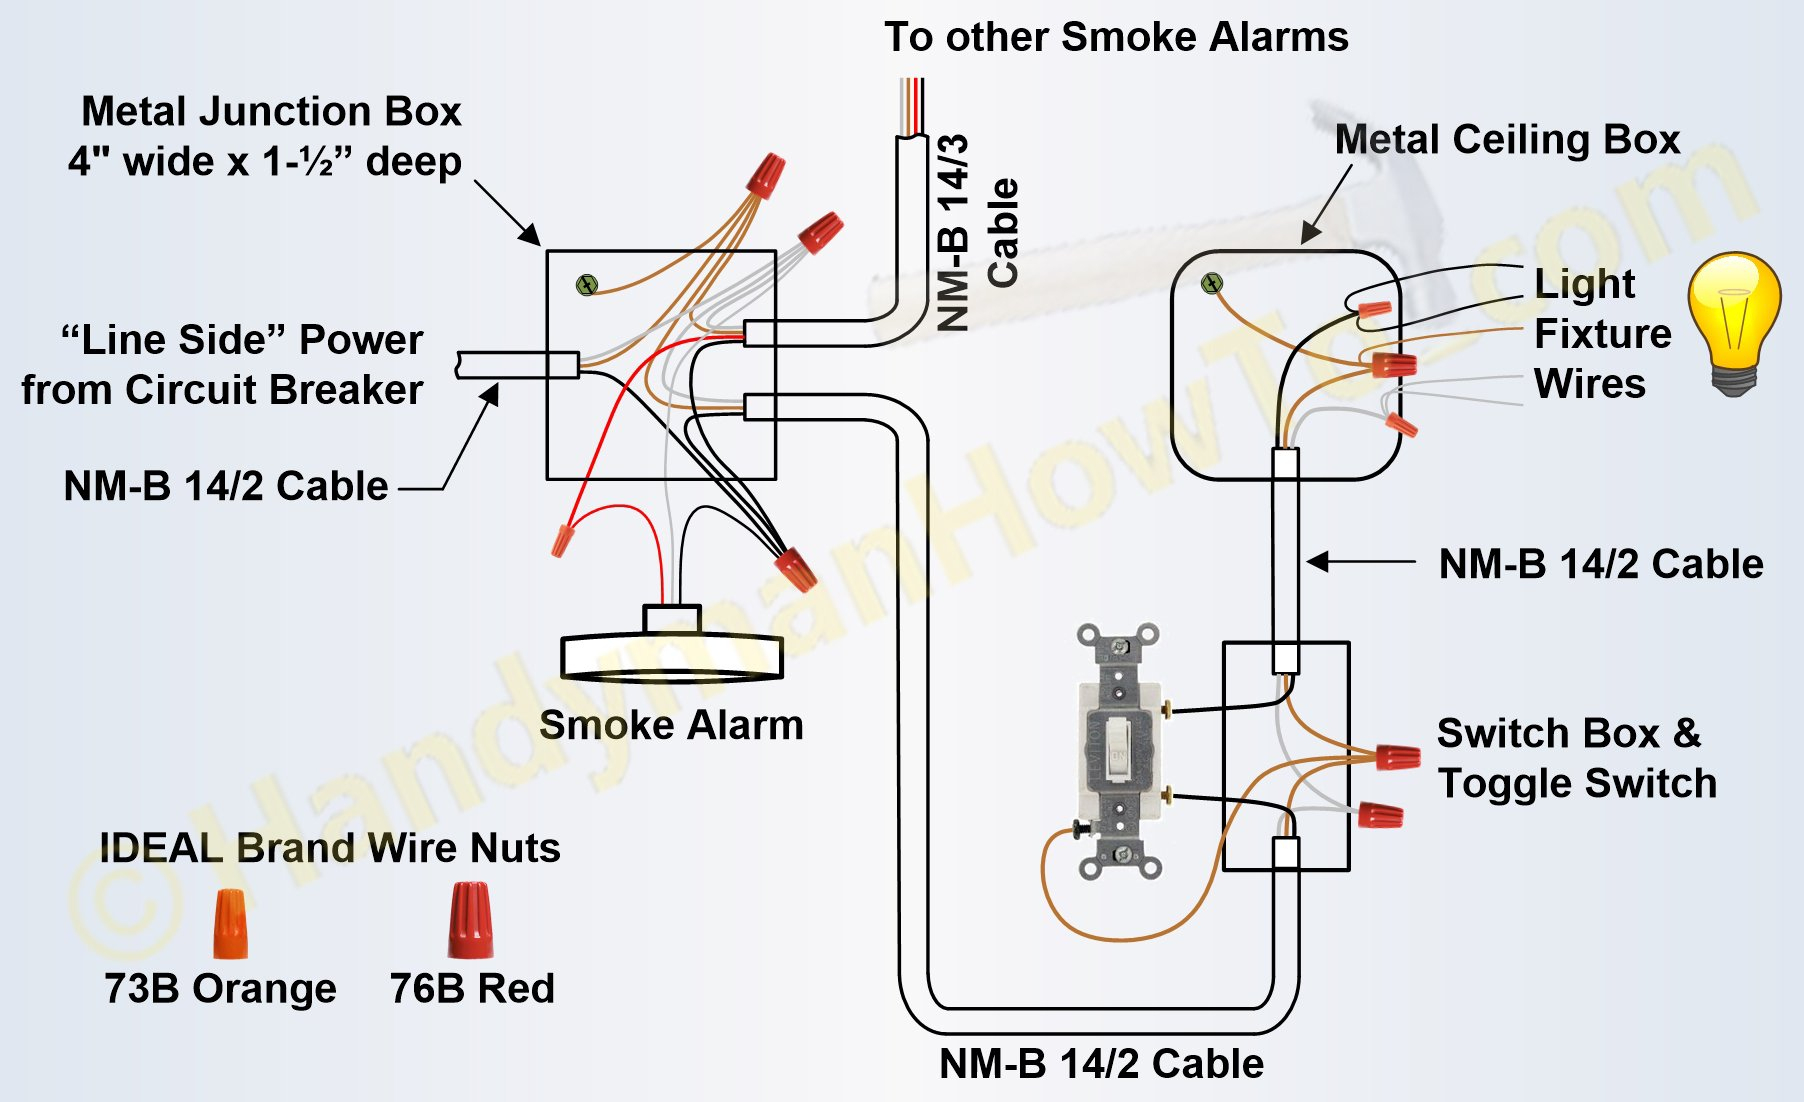 Duct Smoke Detector Wiring Diagram | Manual E-Books - Duct Smoke Detector Wiring Diagram